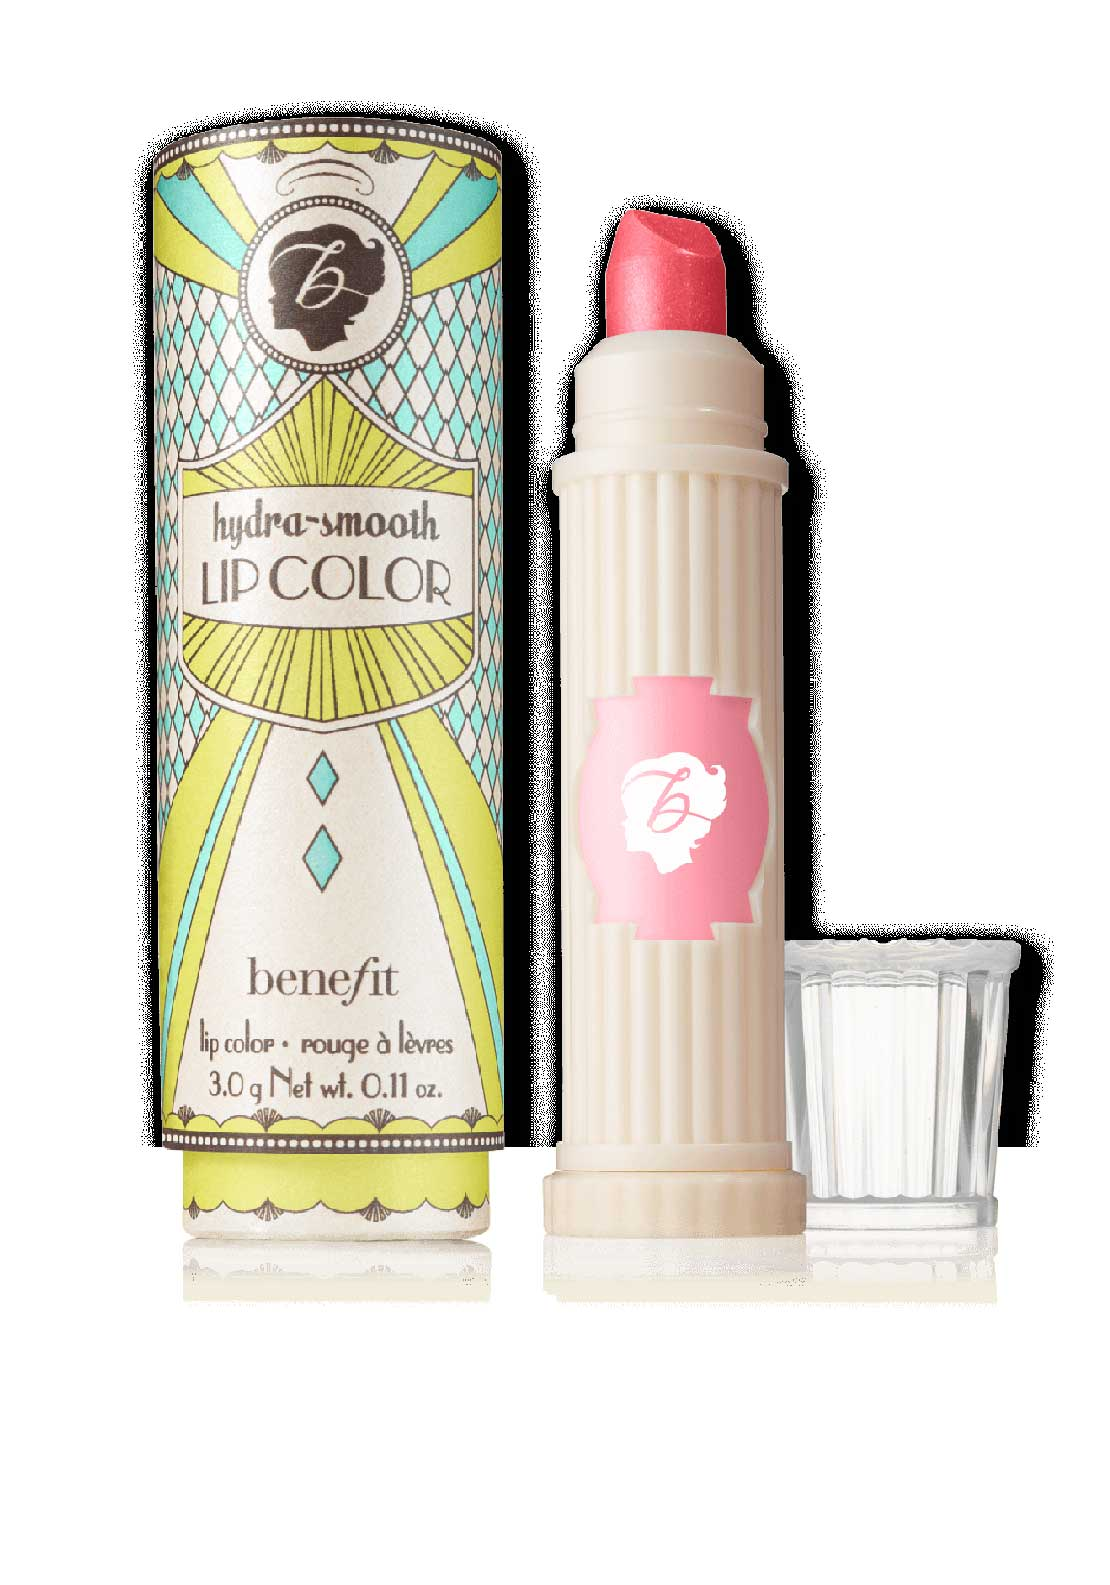 Benefit Hydra Smooth Air Kiss Lip Colour, Sheer Bubblegum